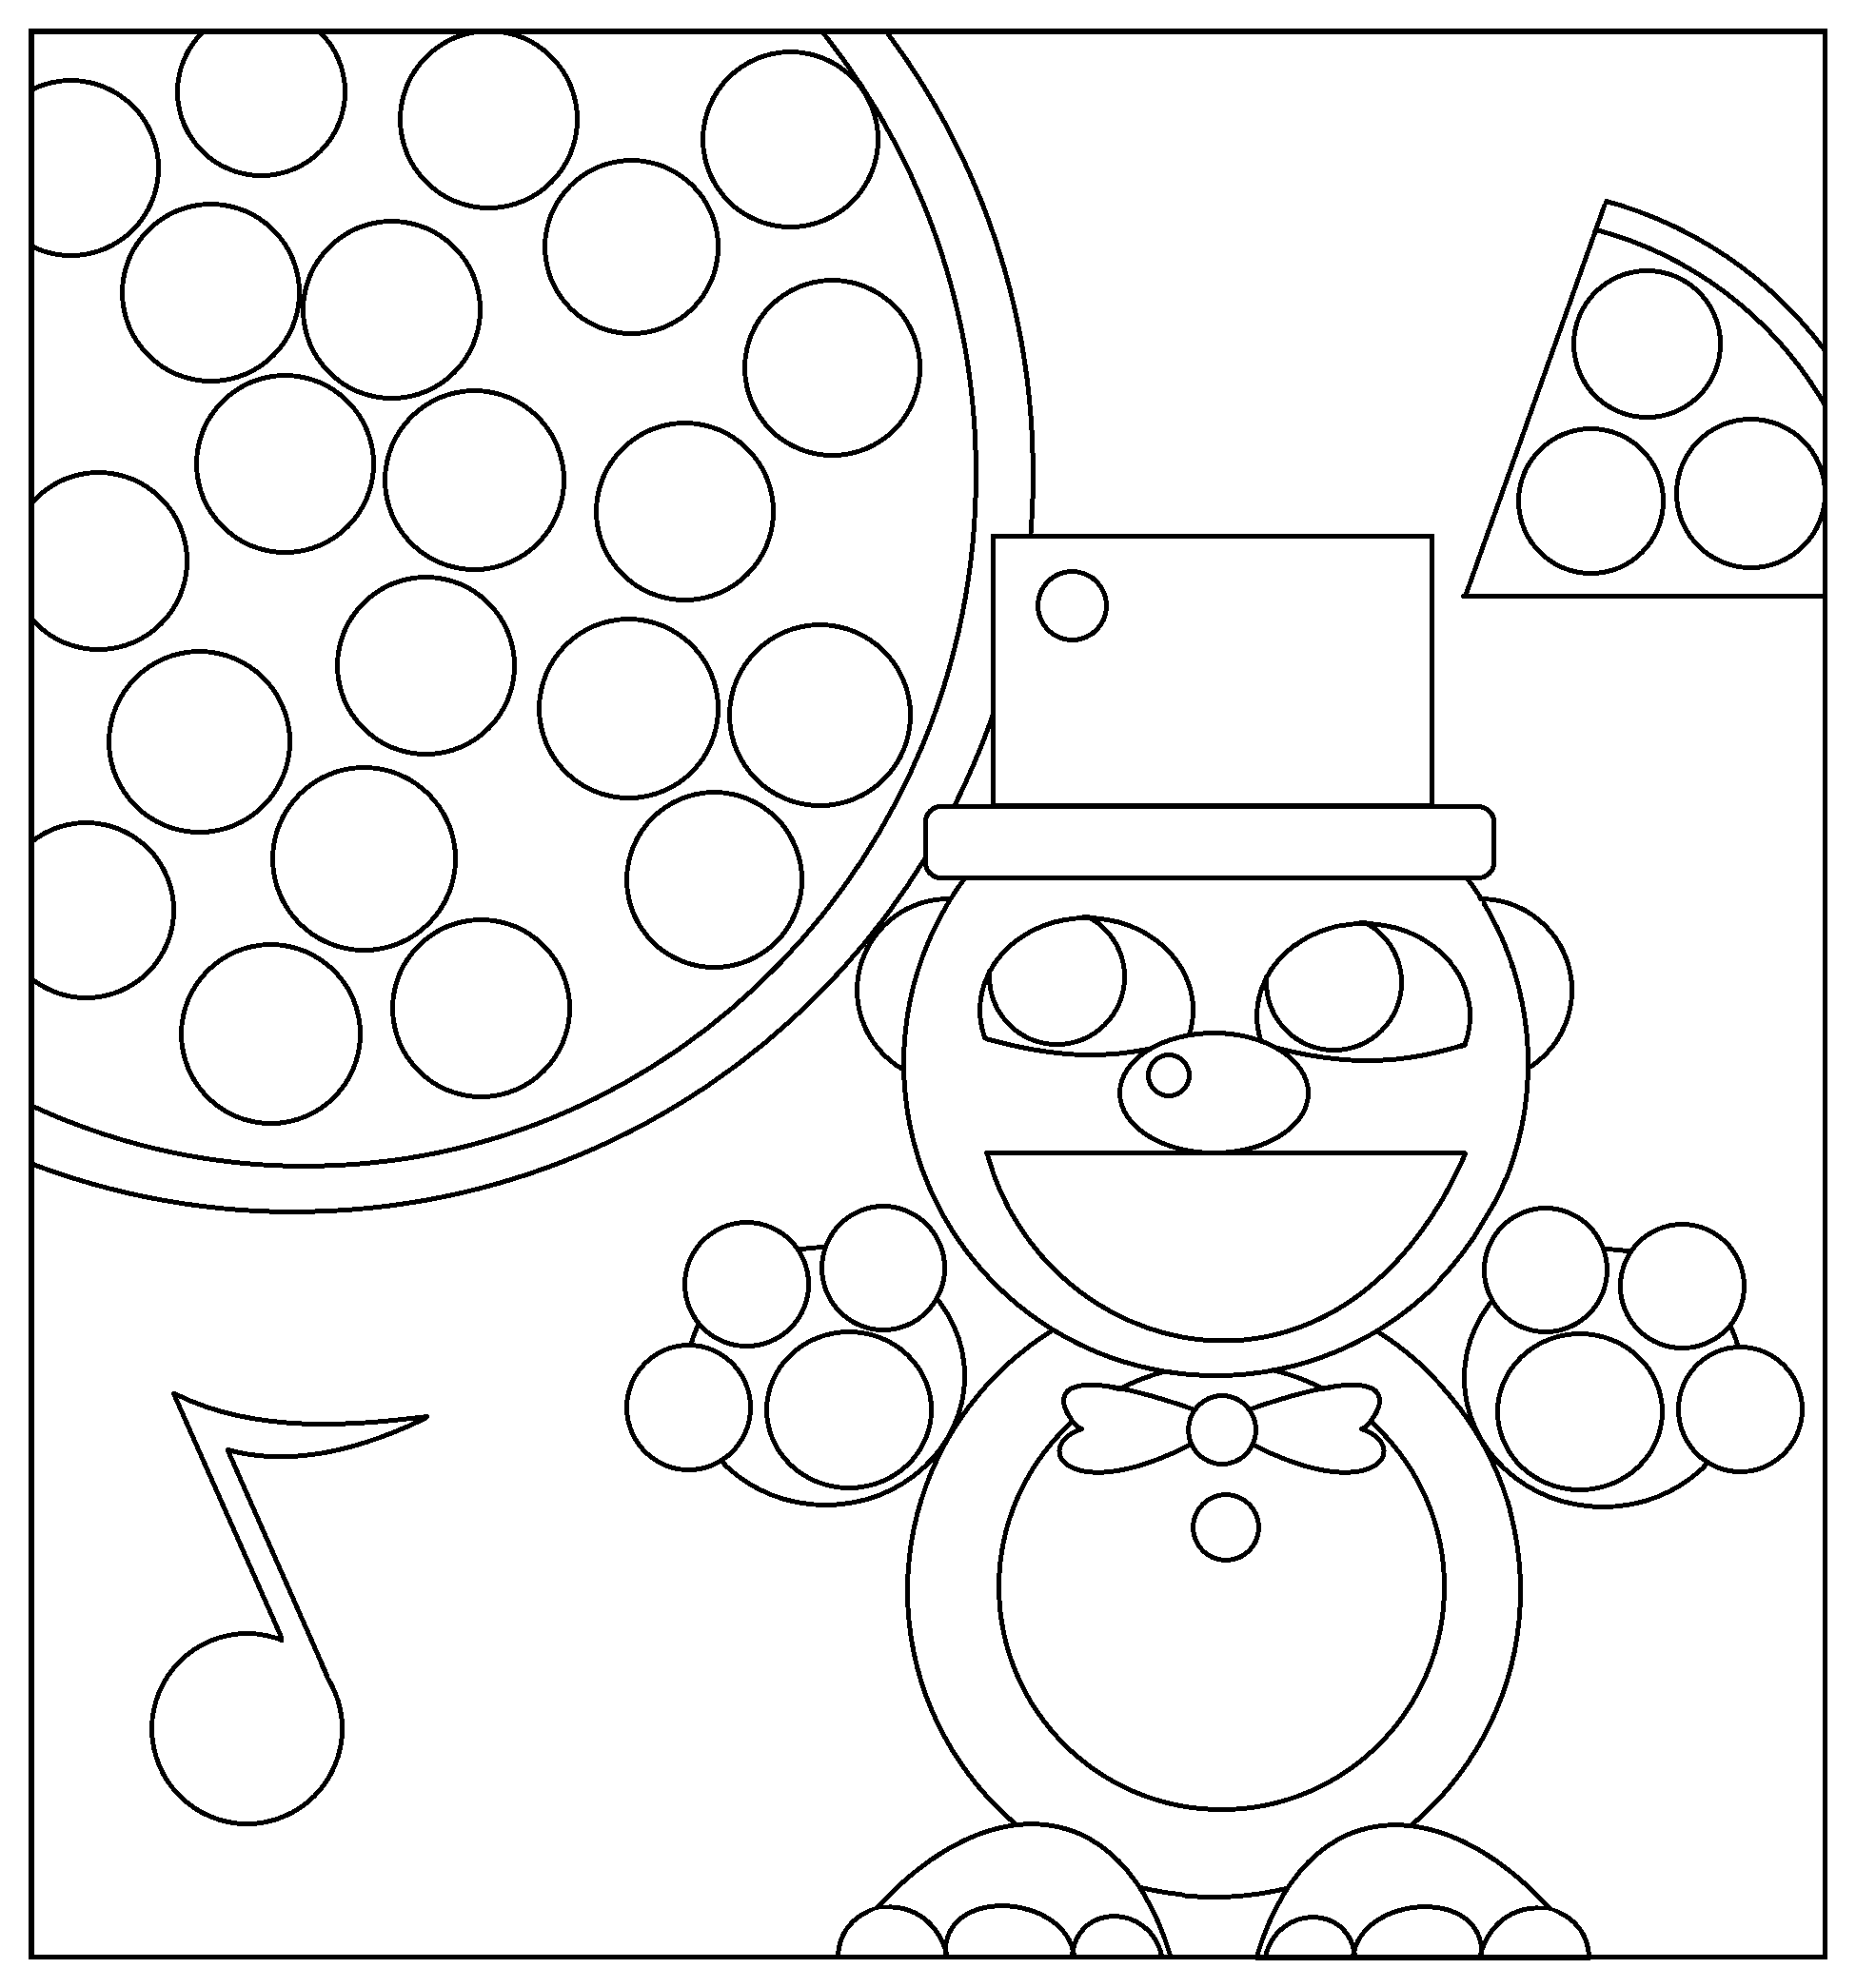 Five nights at freddys coloring pages for Freddy coloring pages